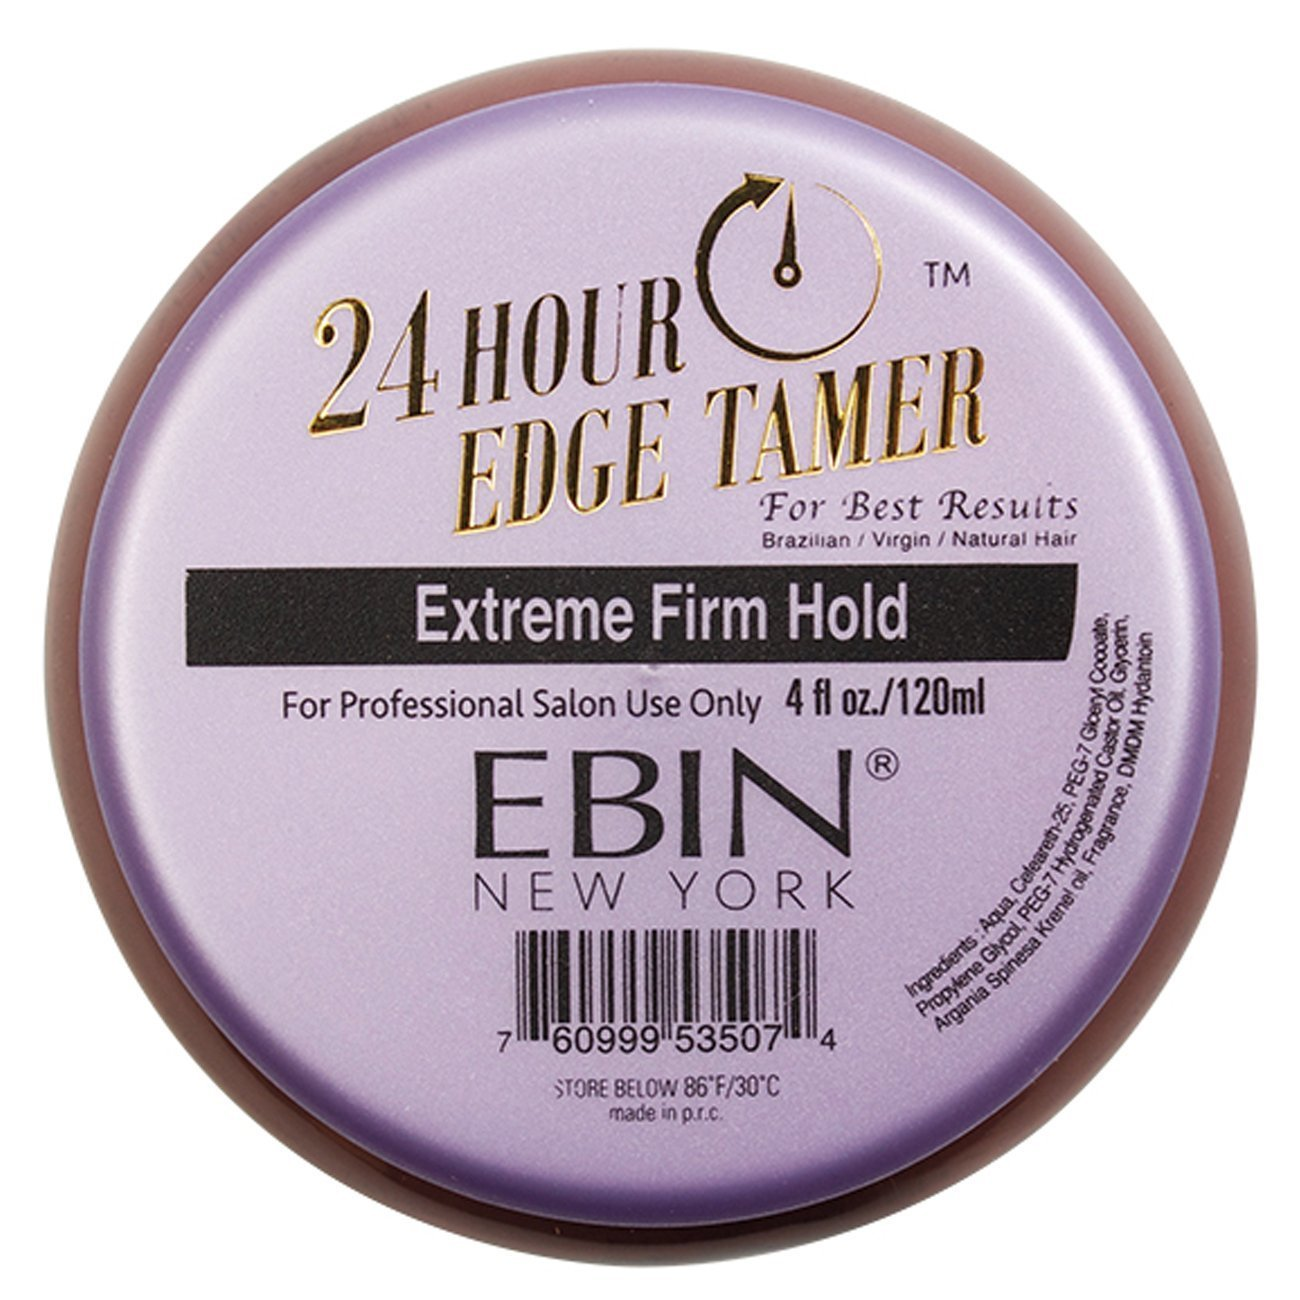 Ebin New York 24 Hour Edge Tamer (24Hr EXTREME FIRM HOLD 4oz)